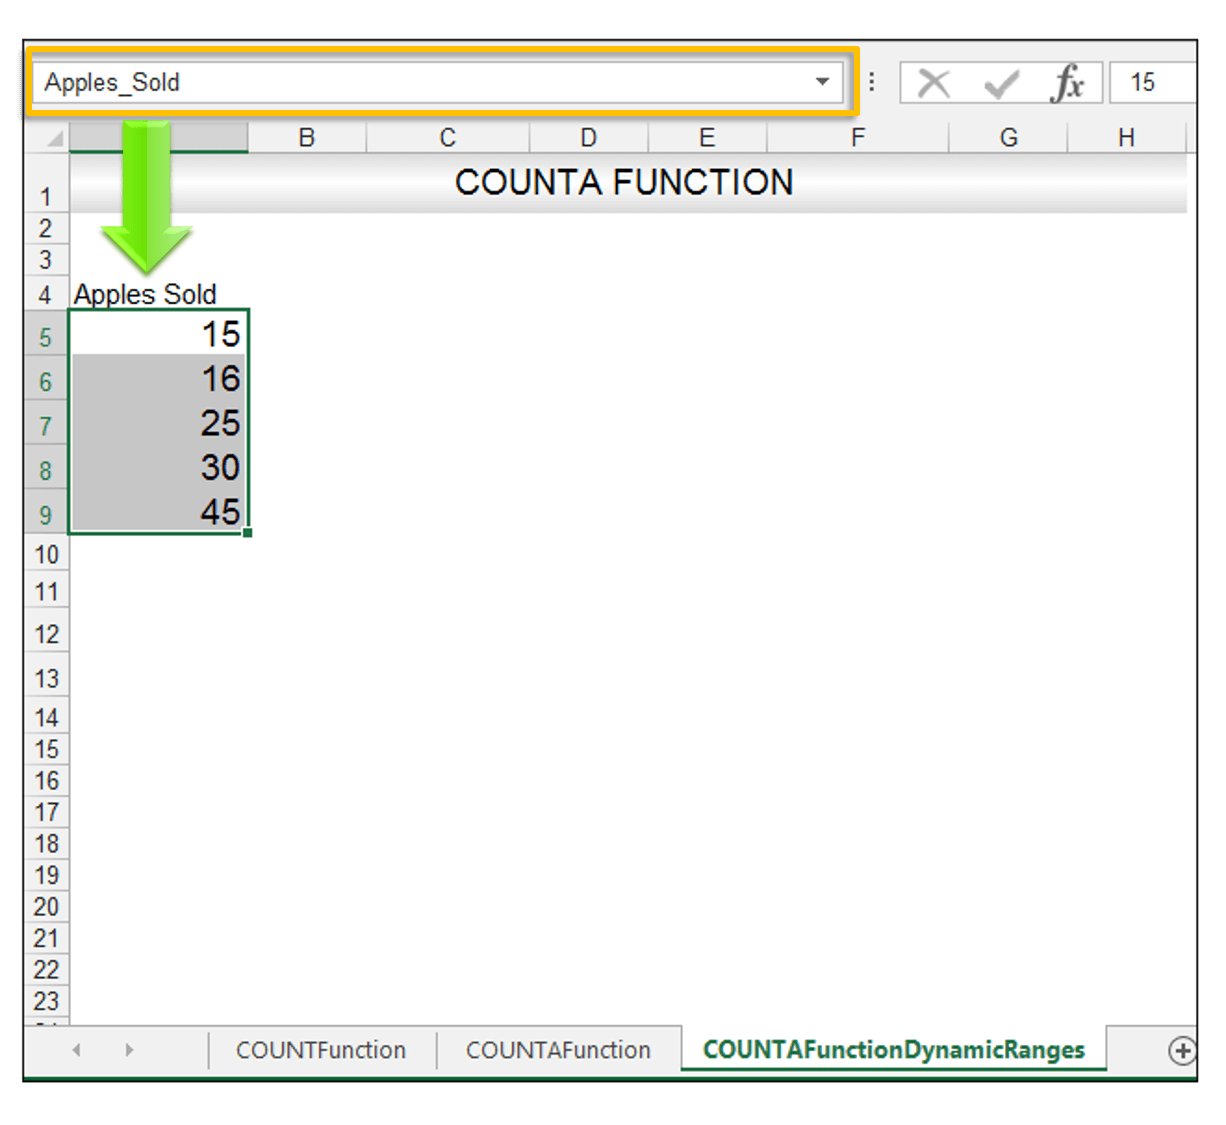 how to make a cell say na in excel